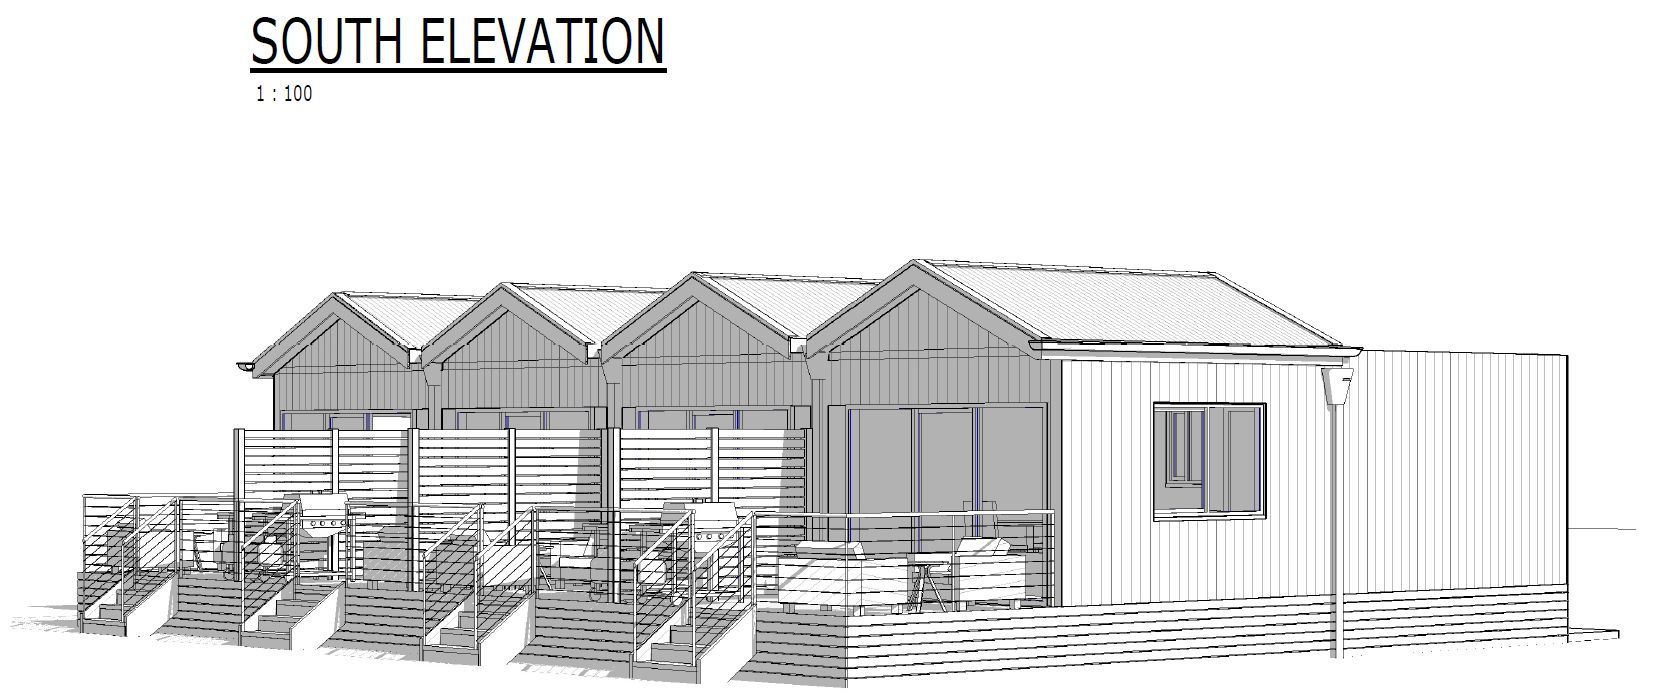 Perspective drawing of the new cabins